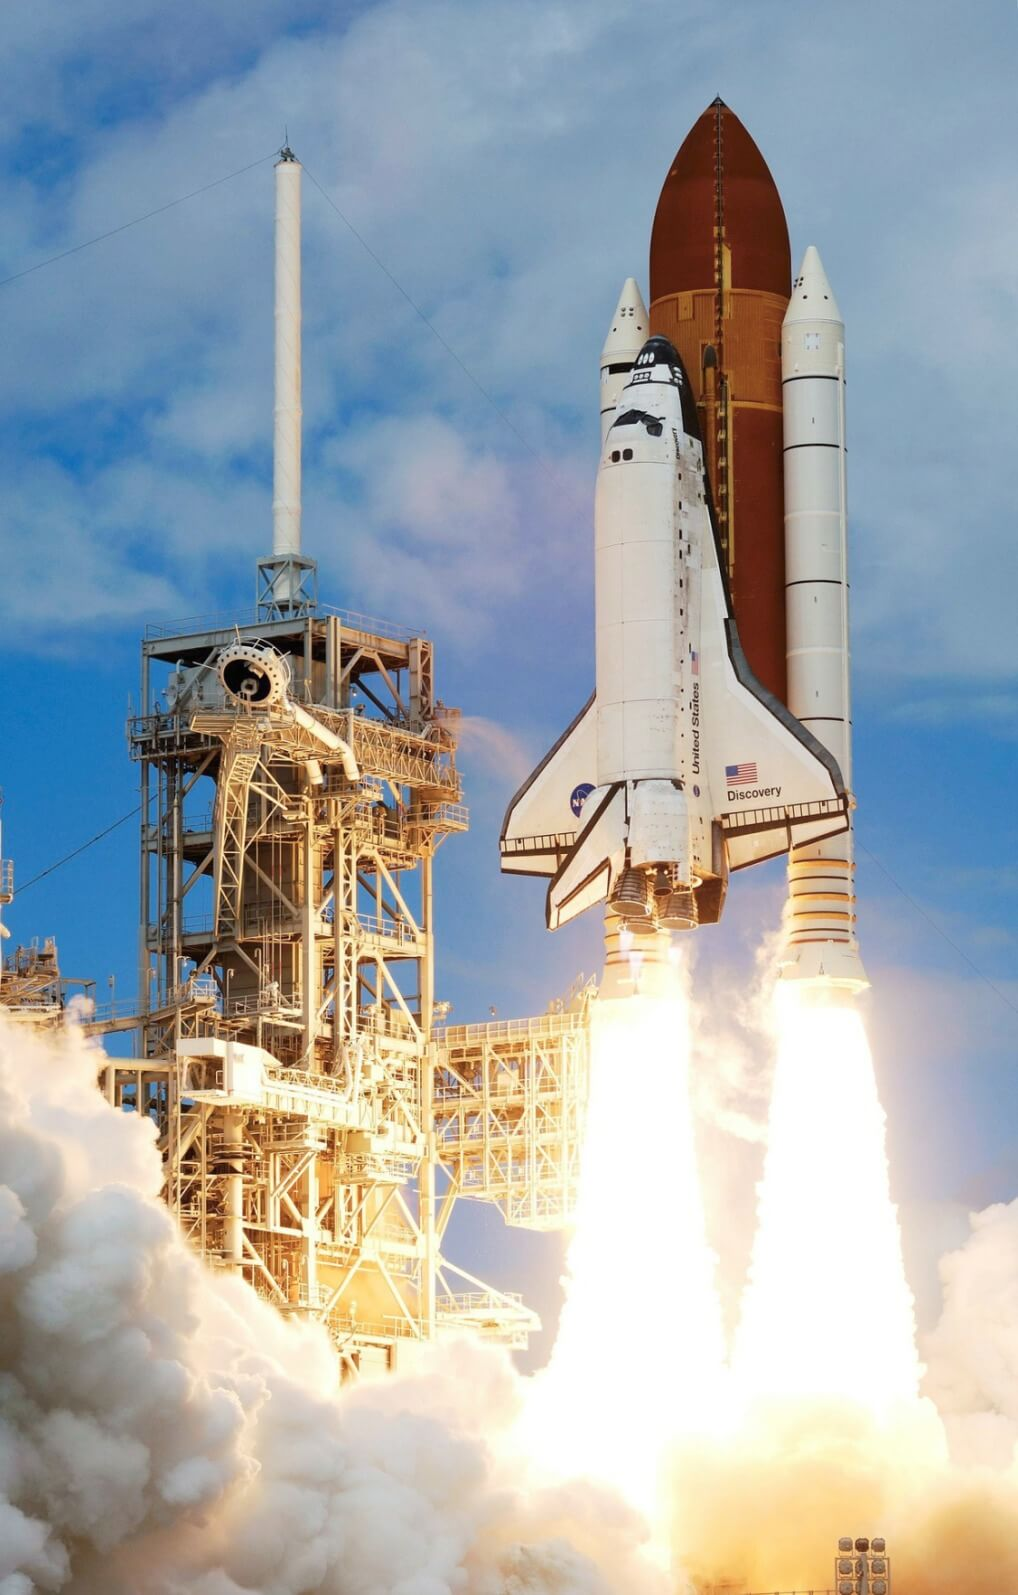 Space Shuttle - Original image